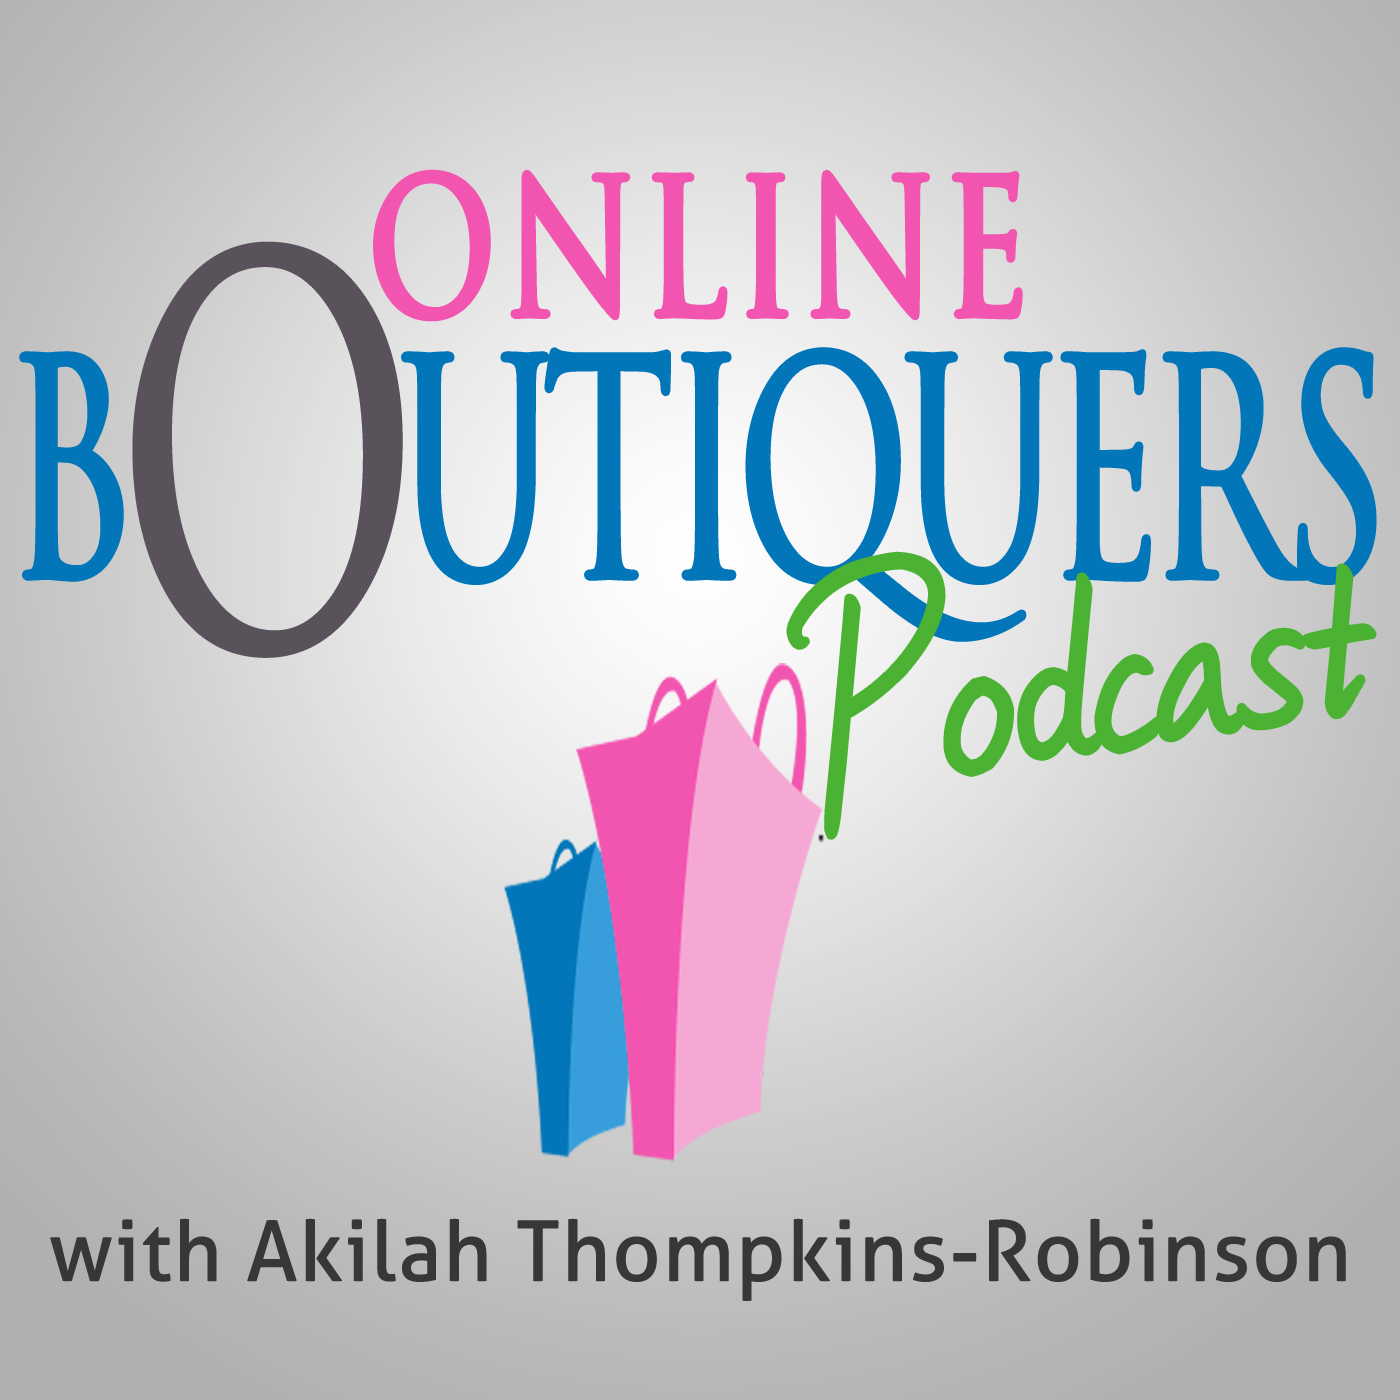 Start an online clothing boutique